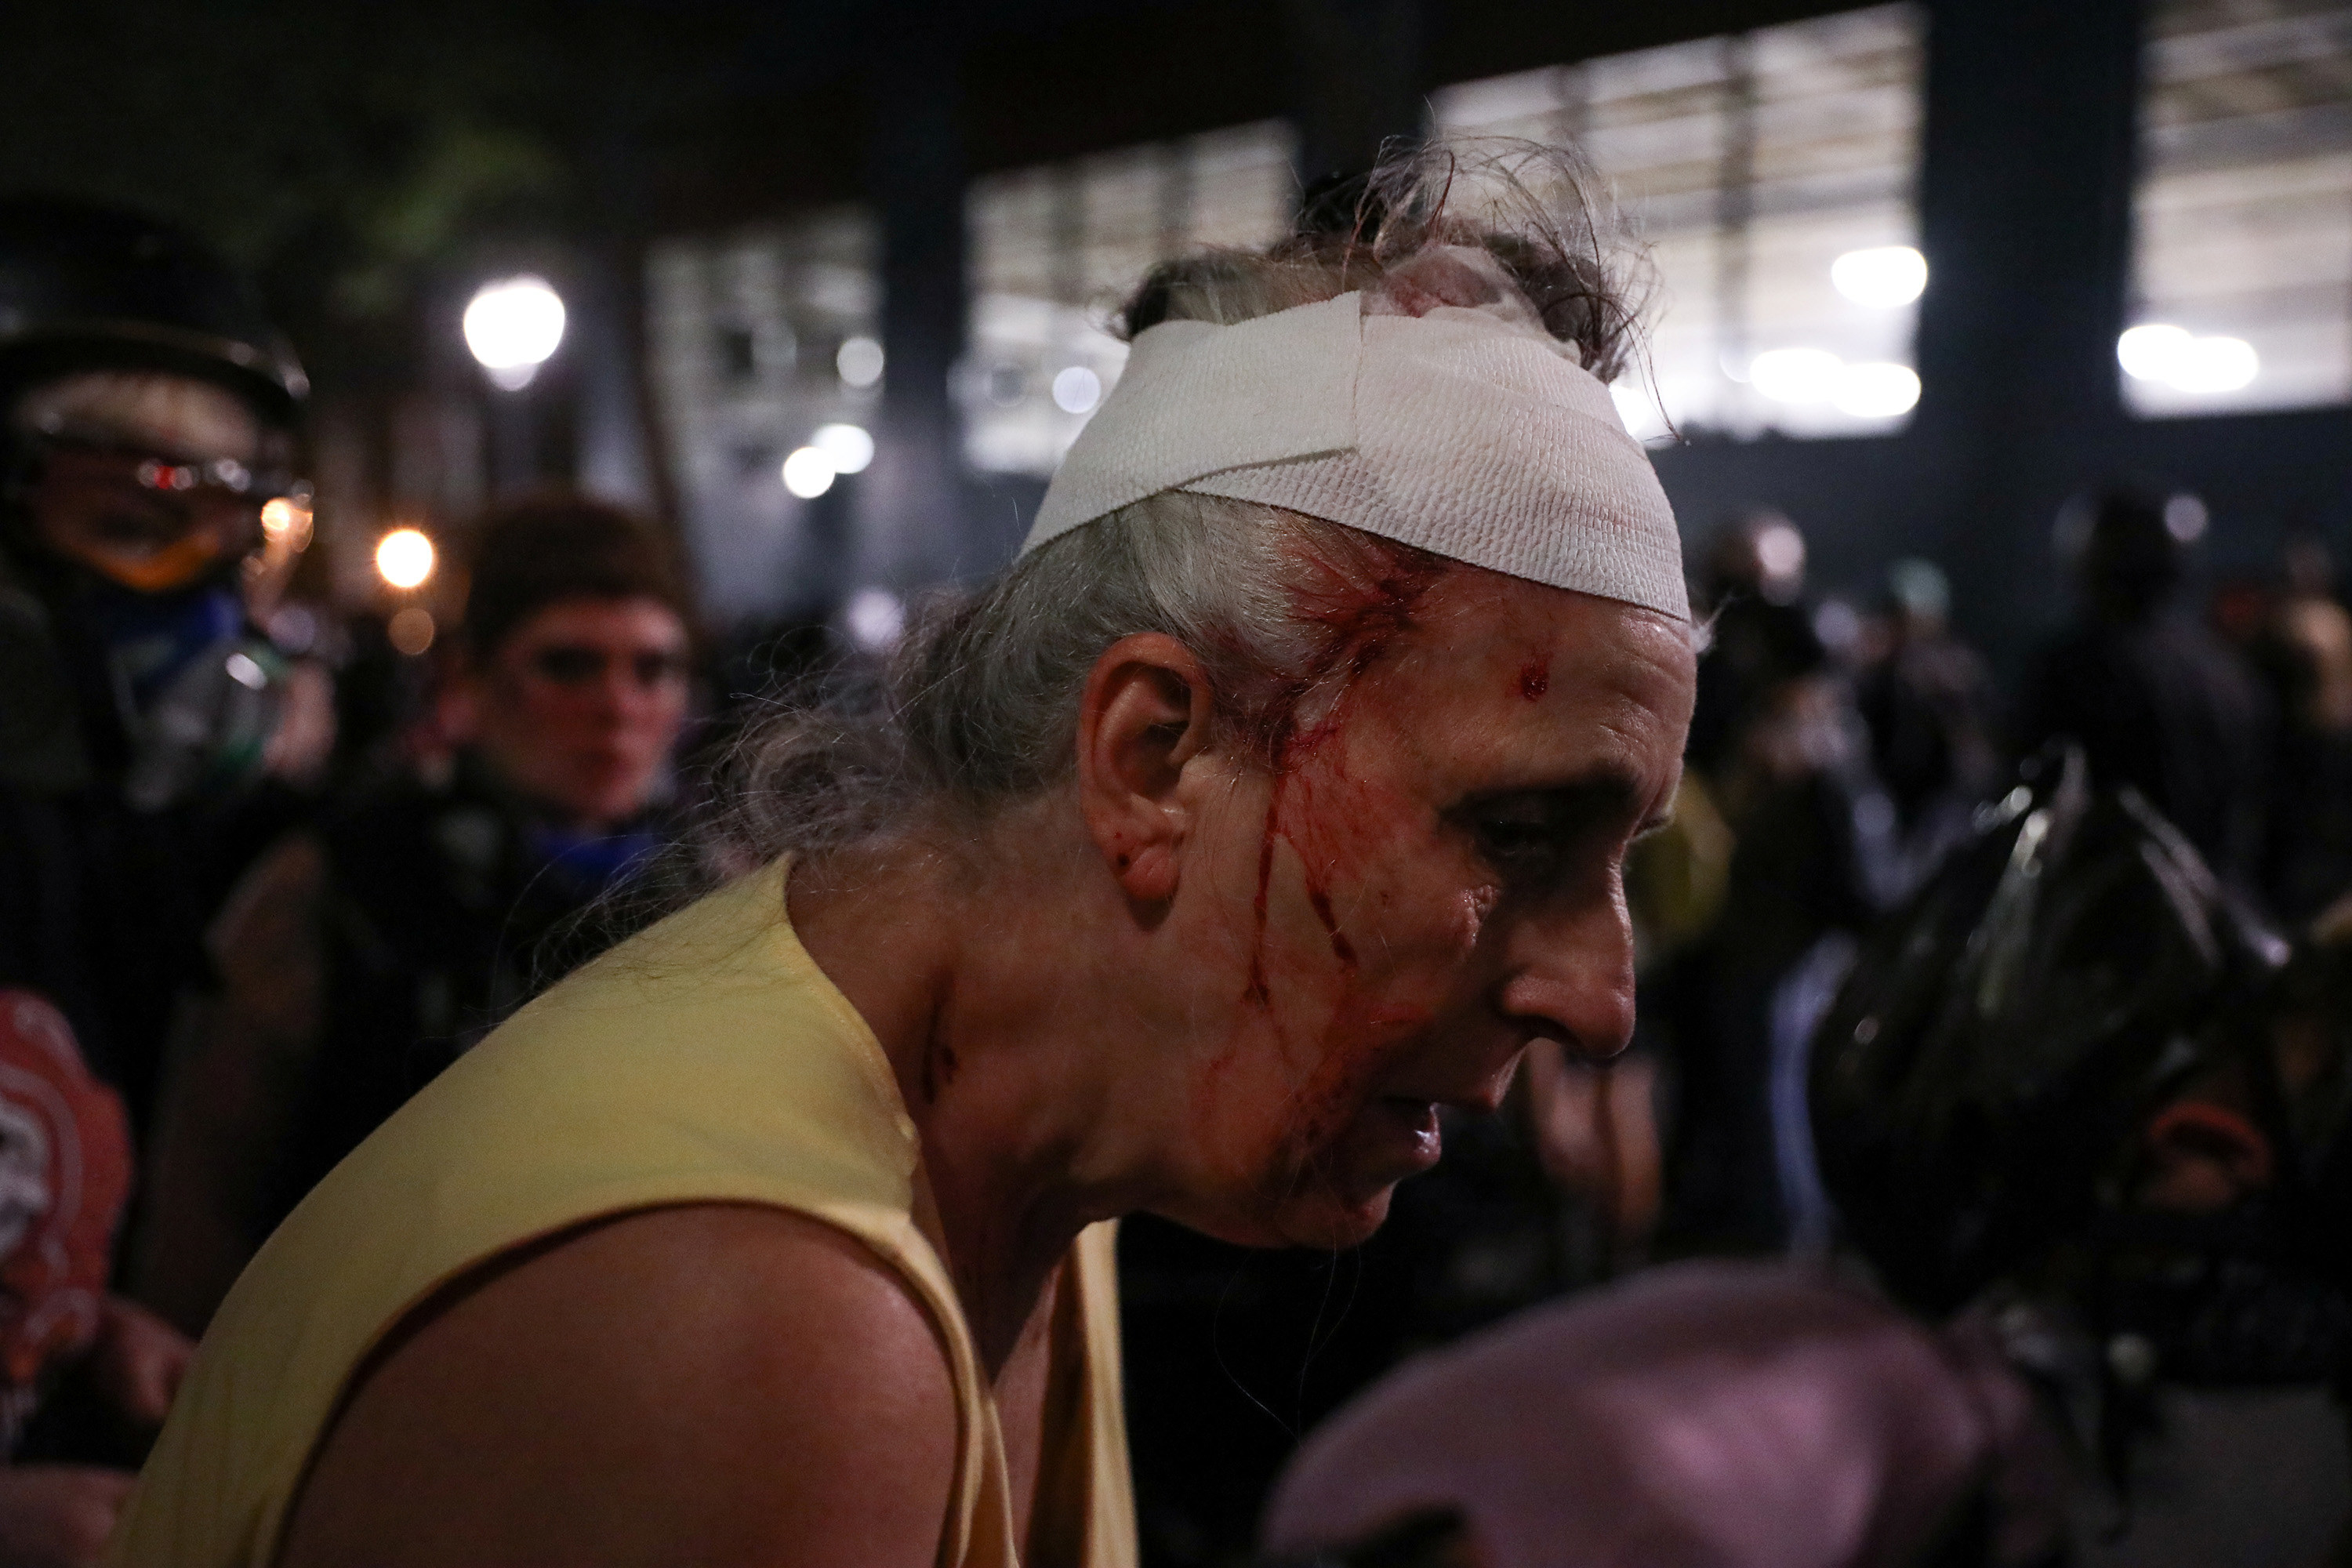 An older woman with a bandage on her head has blood stream down her face after being injured during a demonstration in Portland